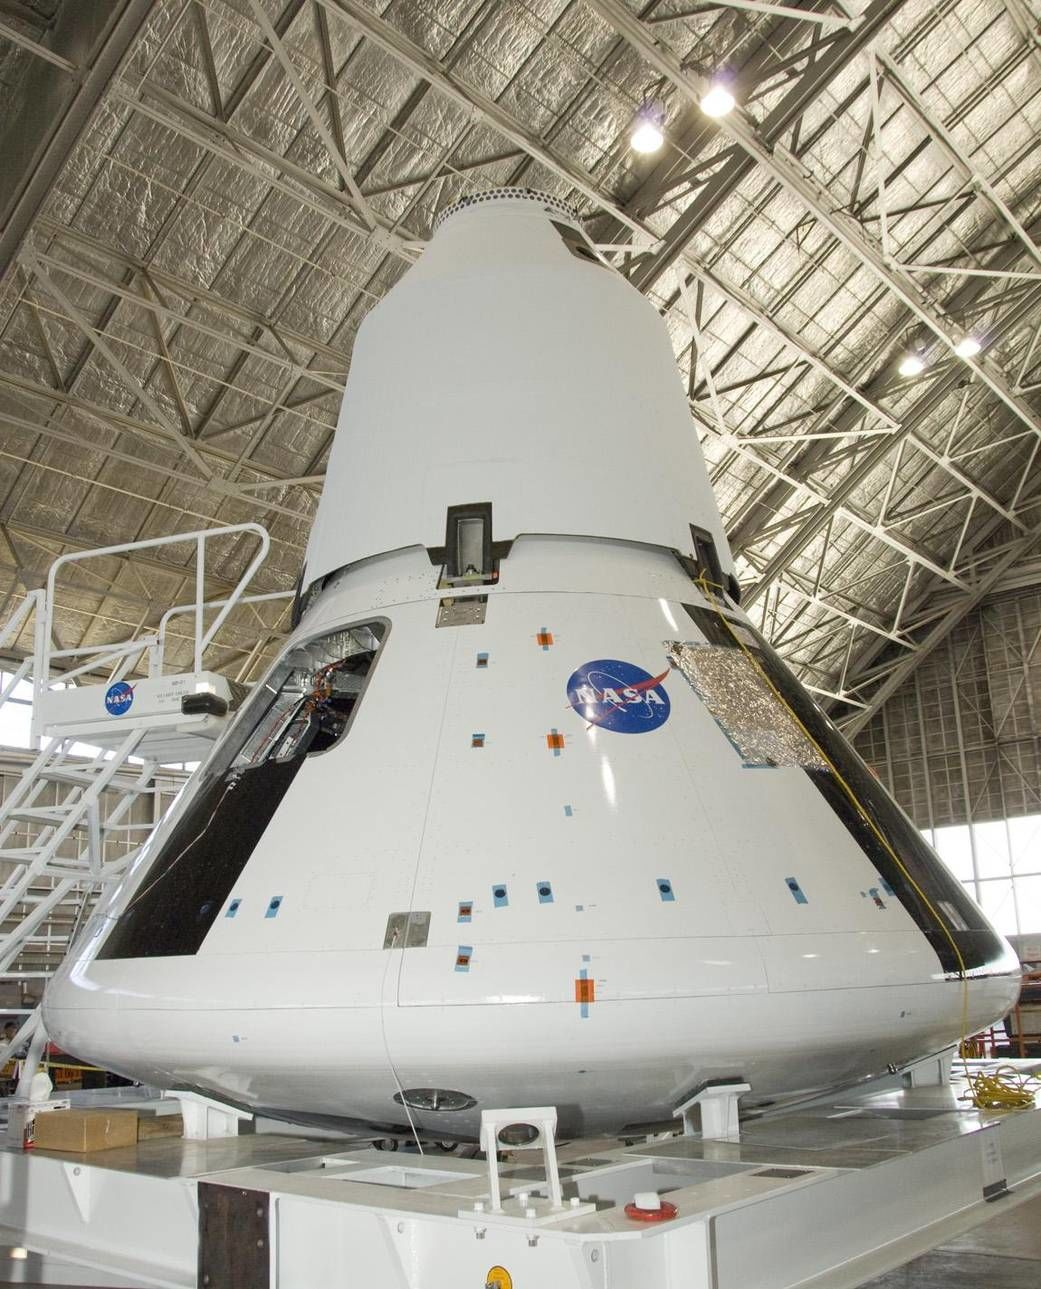 NASA image of Orion spacecraft